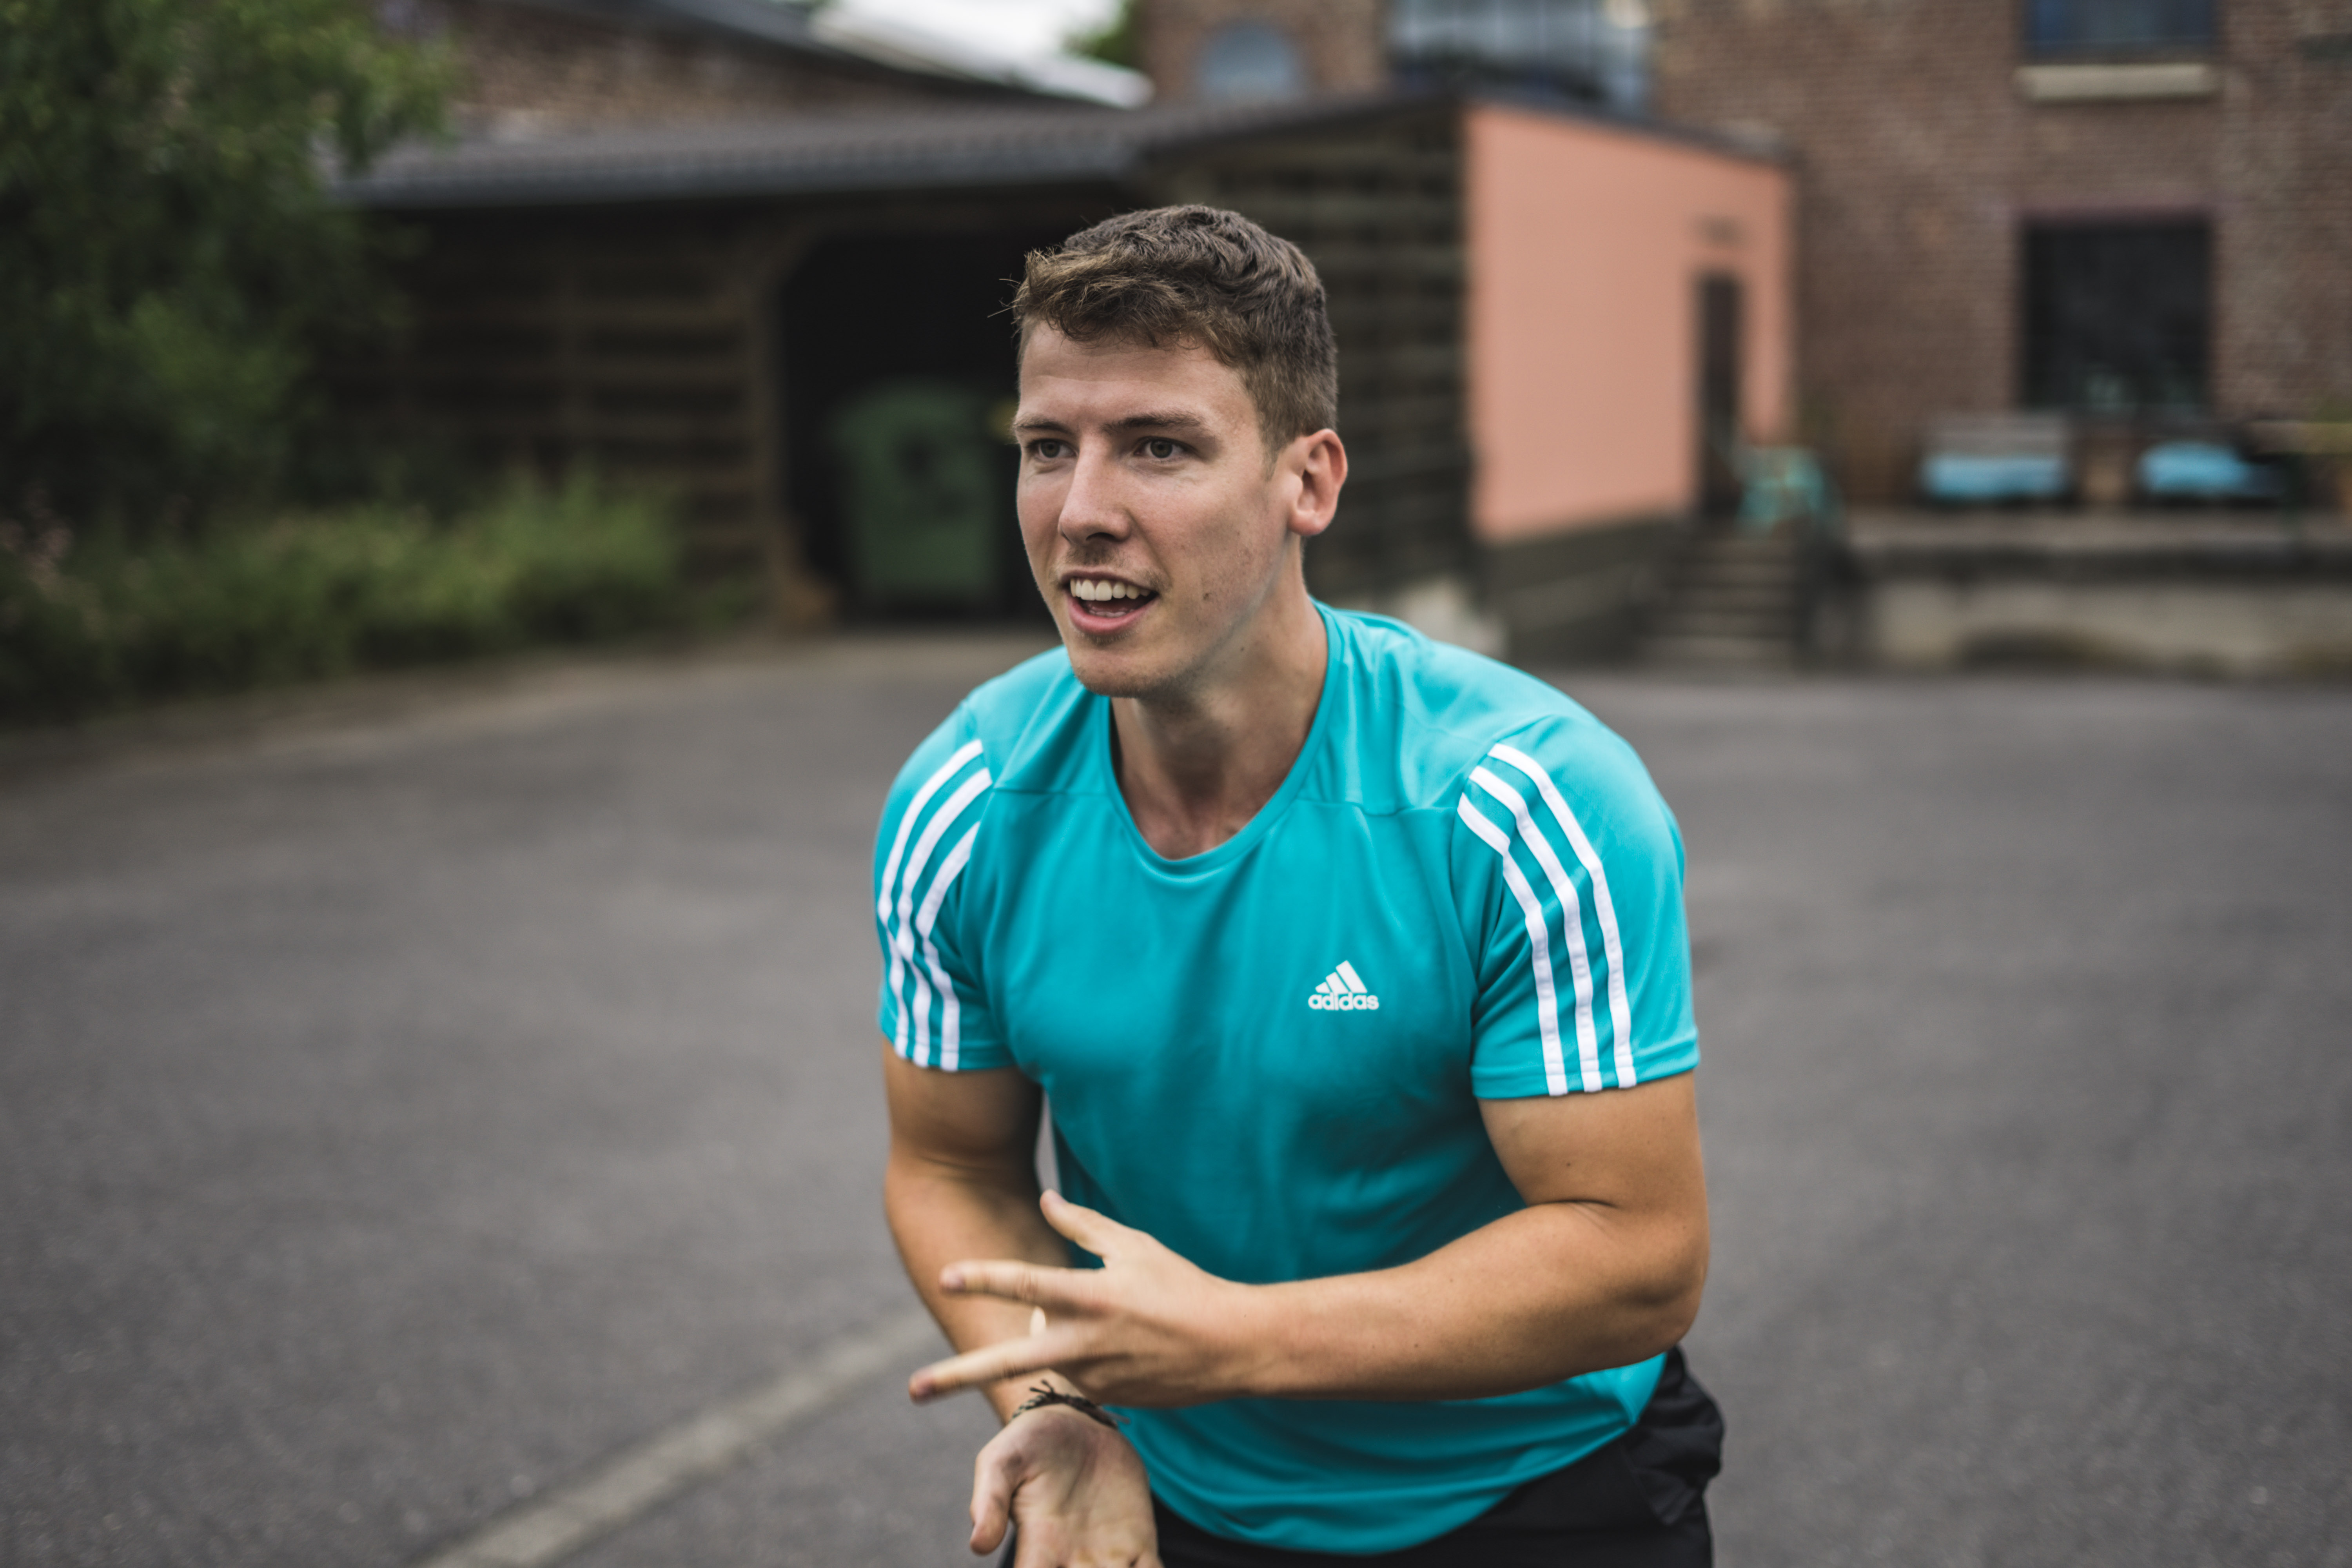 Personal Fitness Coaching Niklas Wittber Hannover